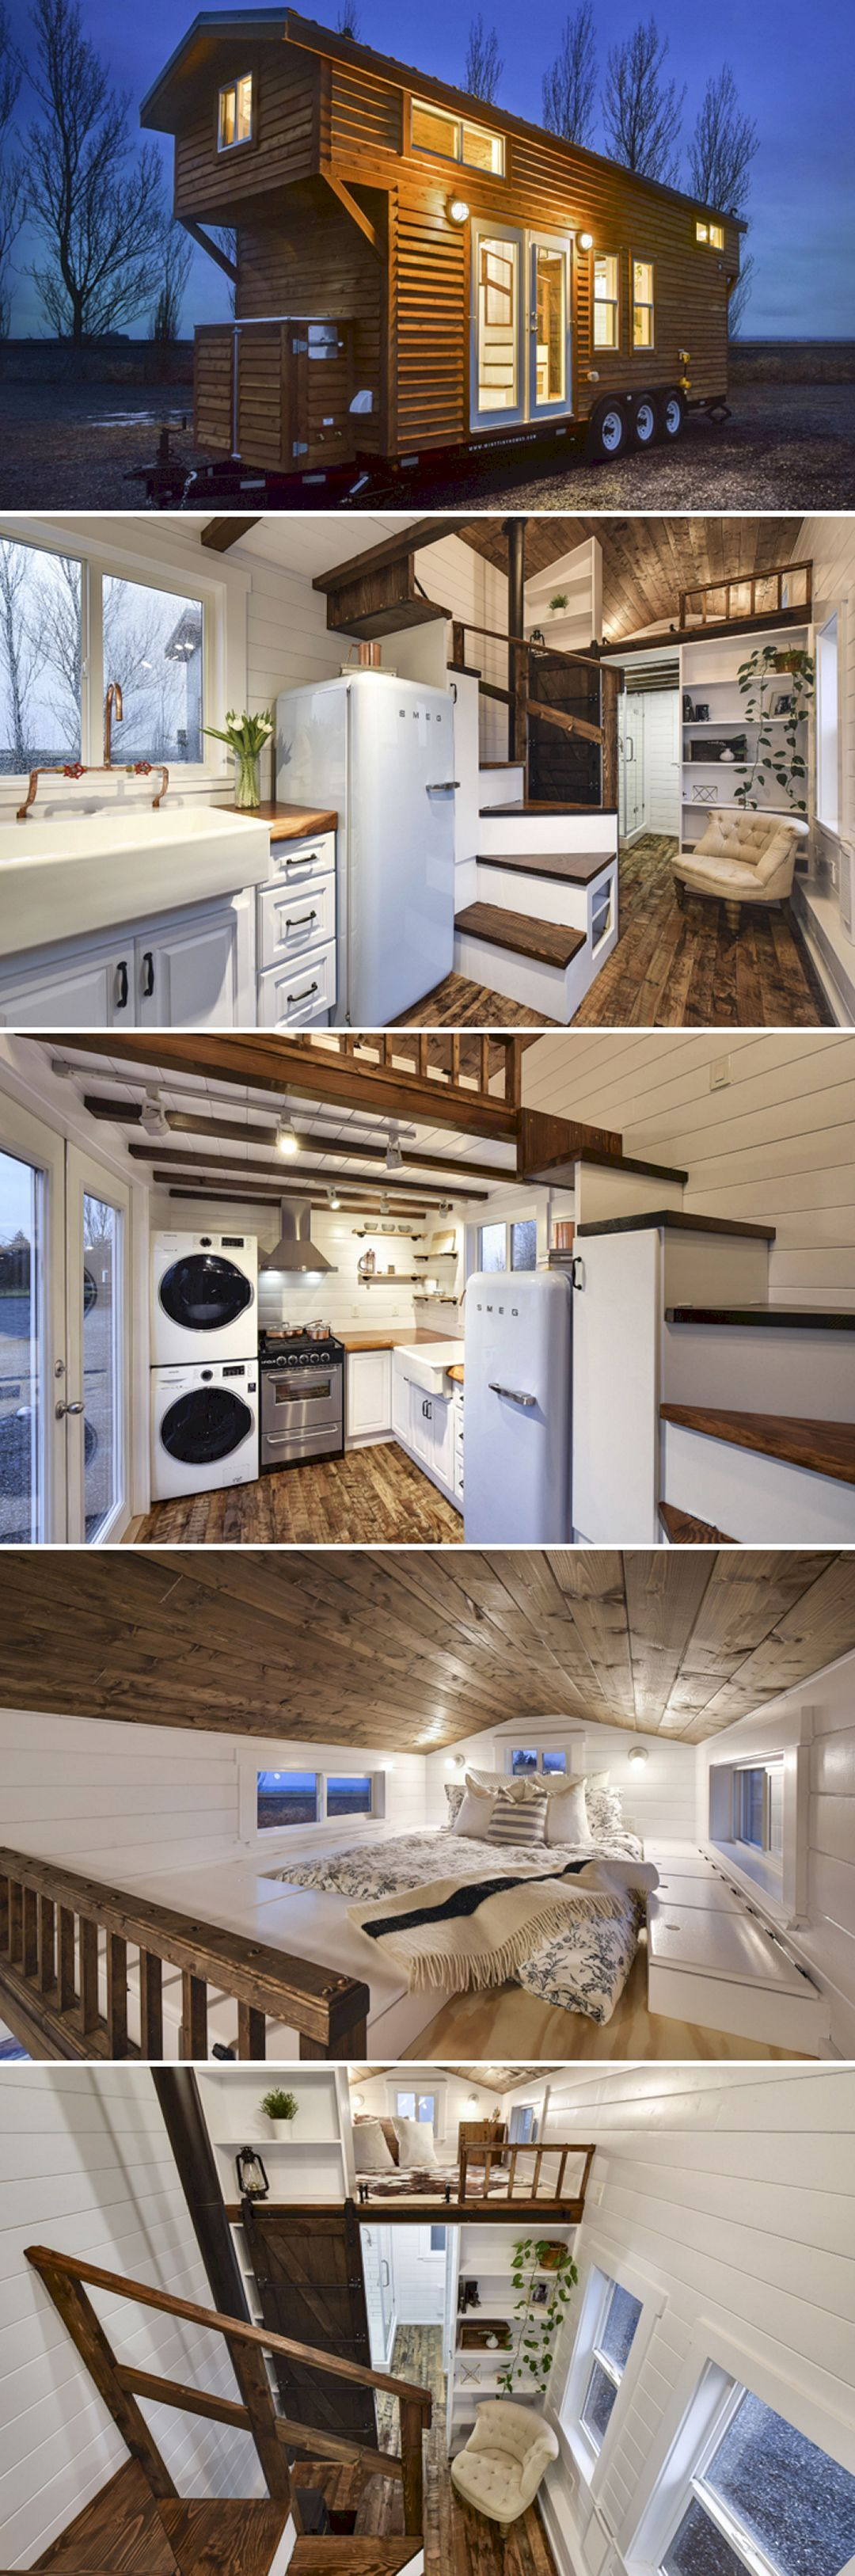 70 Marvelous Tiny Houses Design That Maximize Style And Function